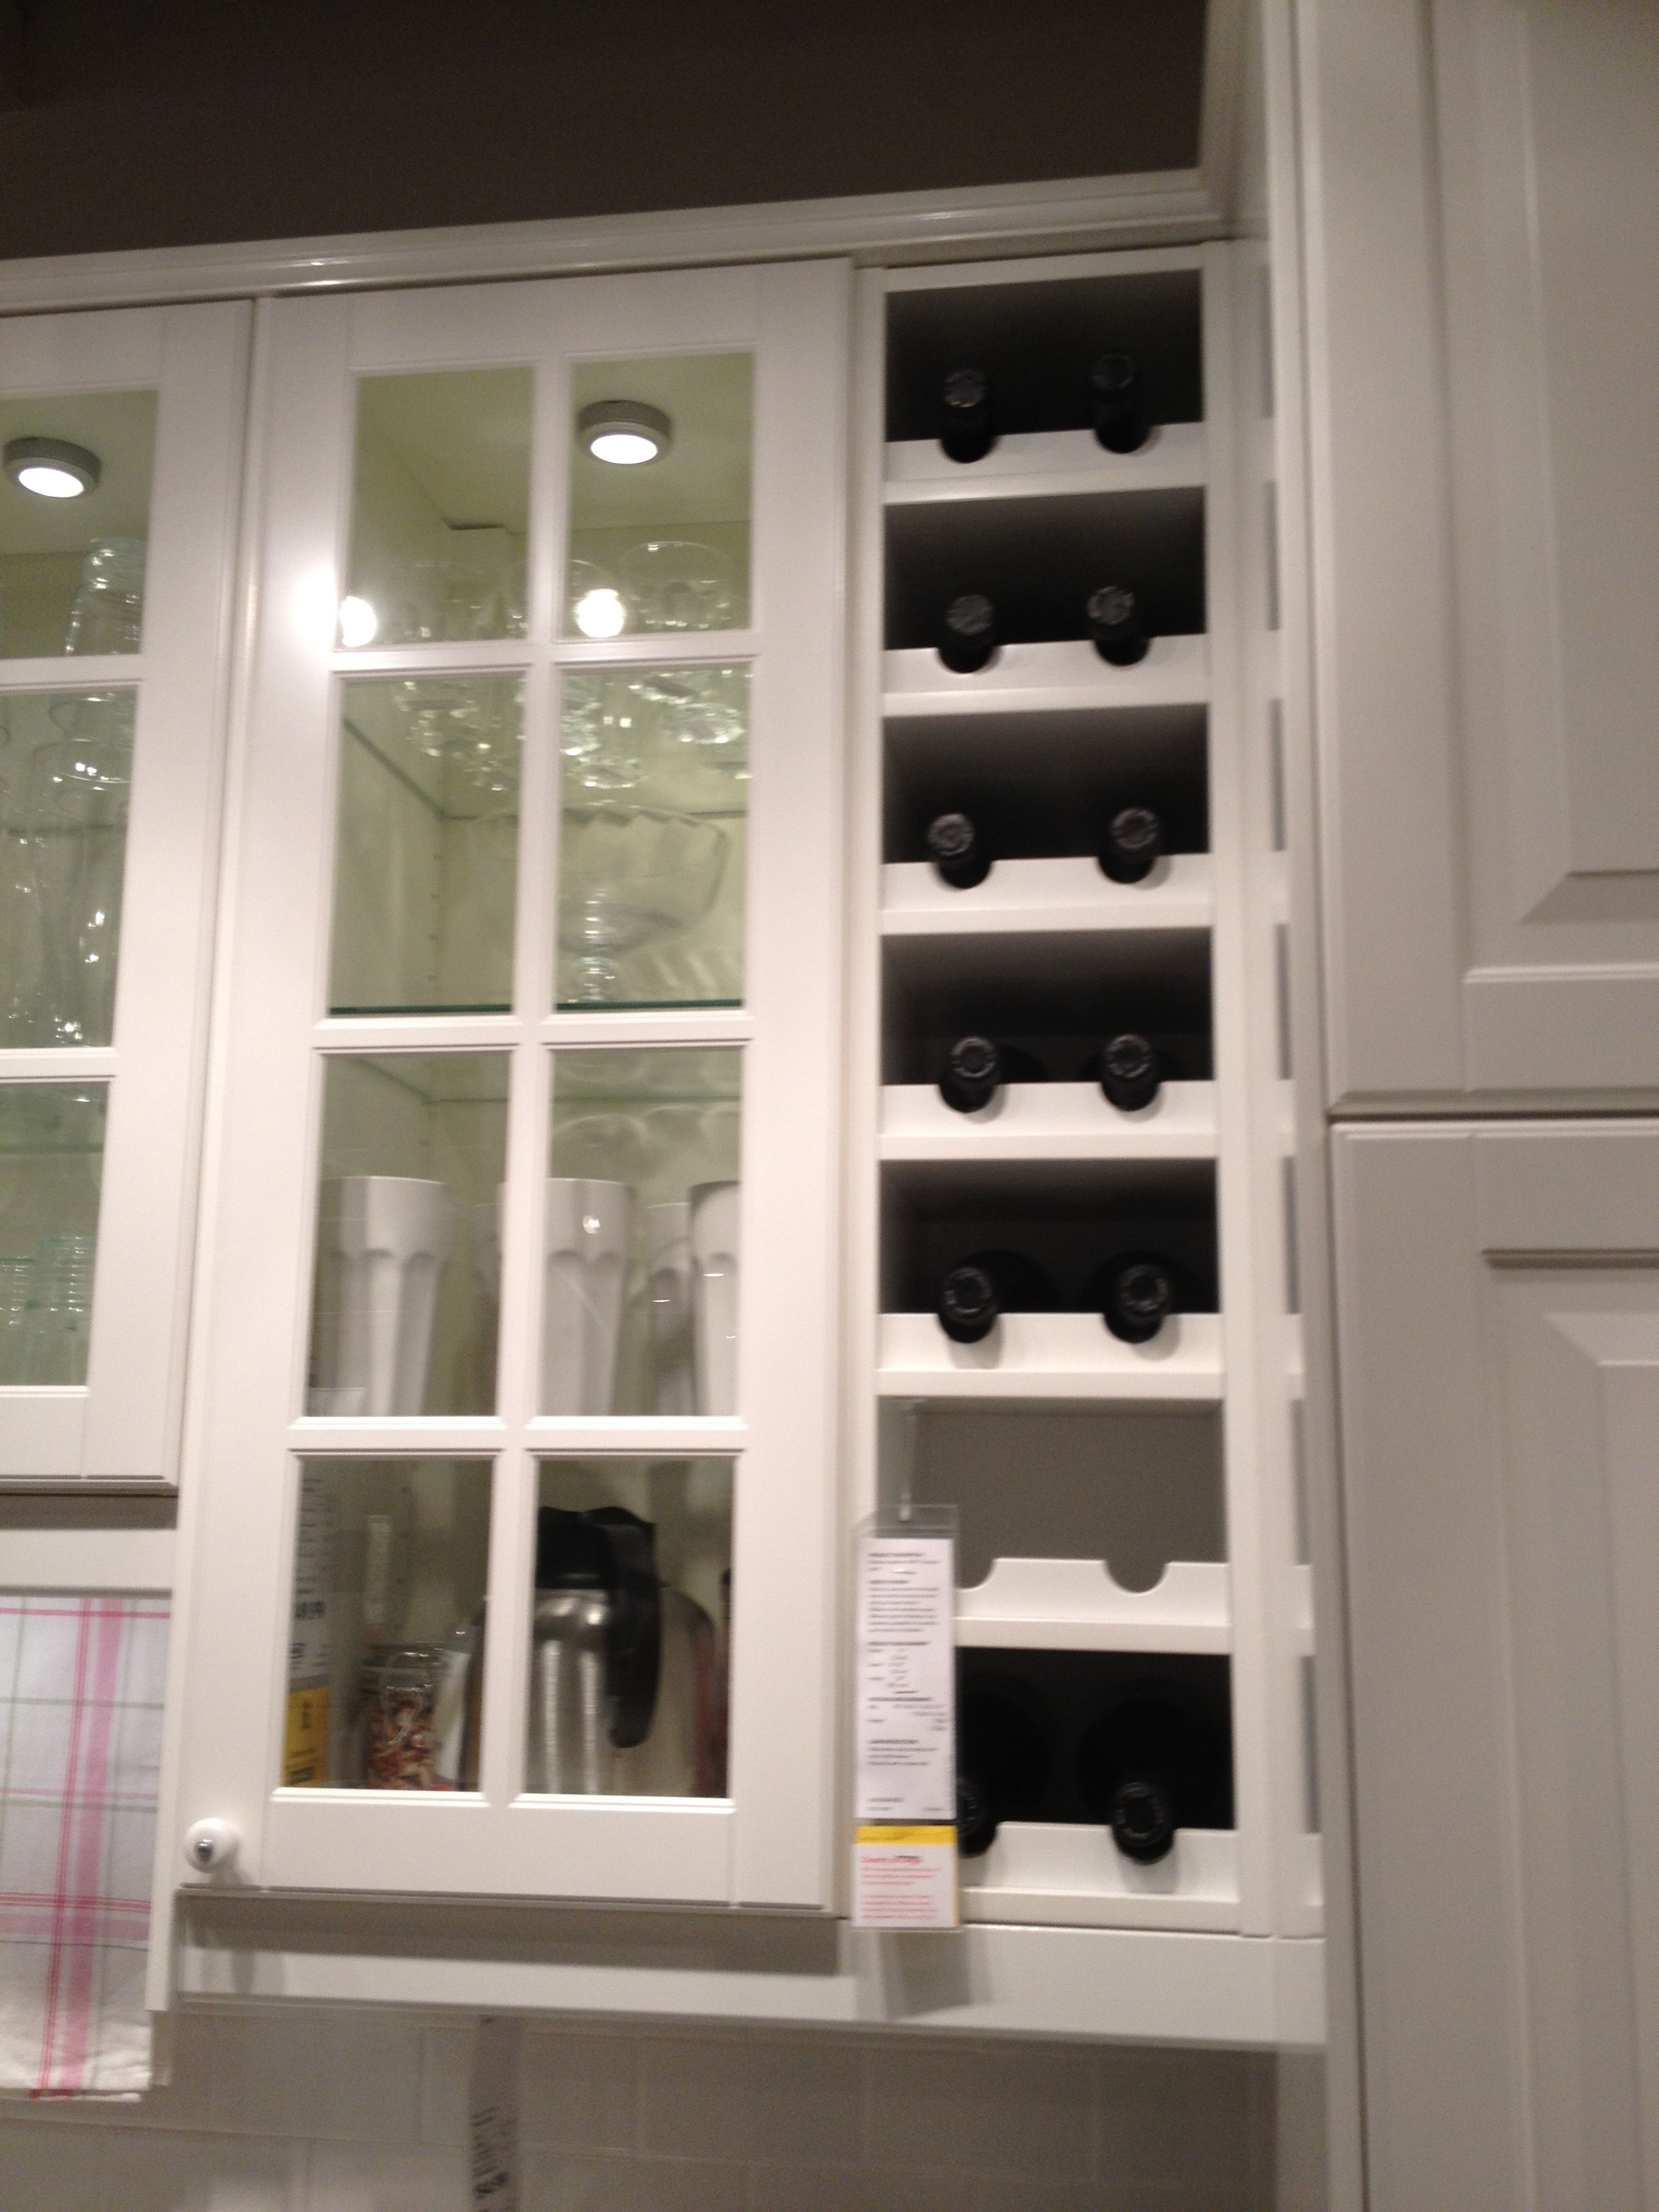 Pin By Cindy Chang On For The Home Kitchen Wine Rack Built In Wine Rack Wine Rack Cabinet